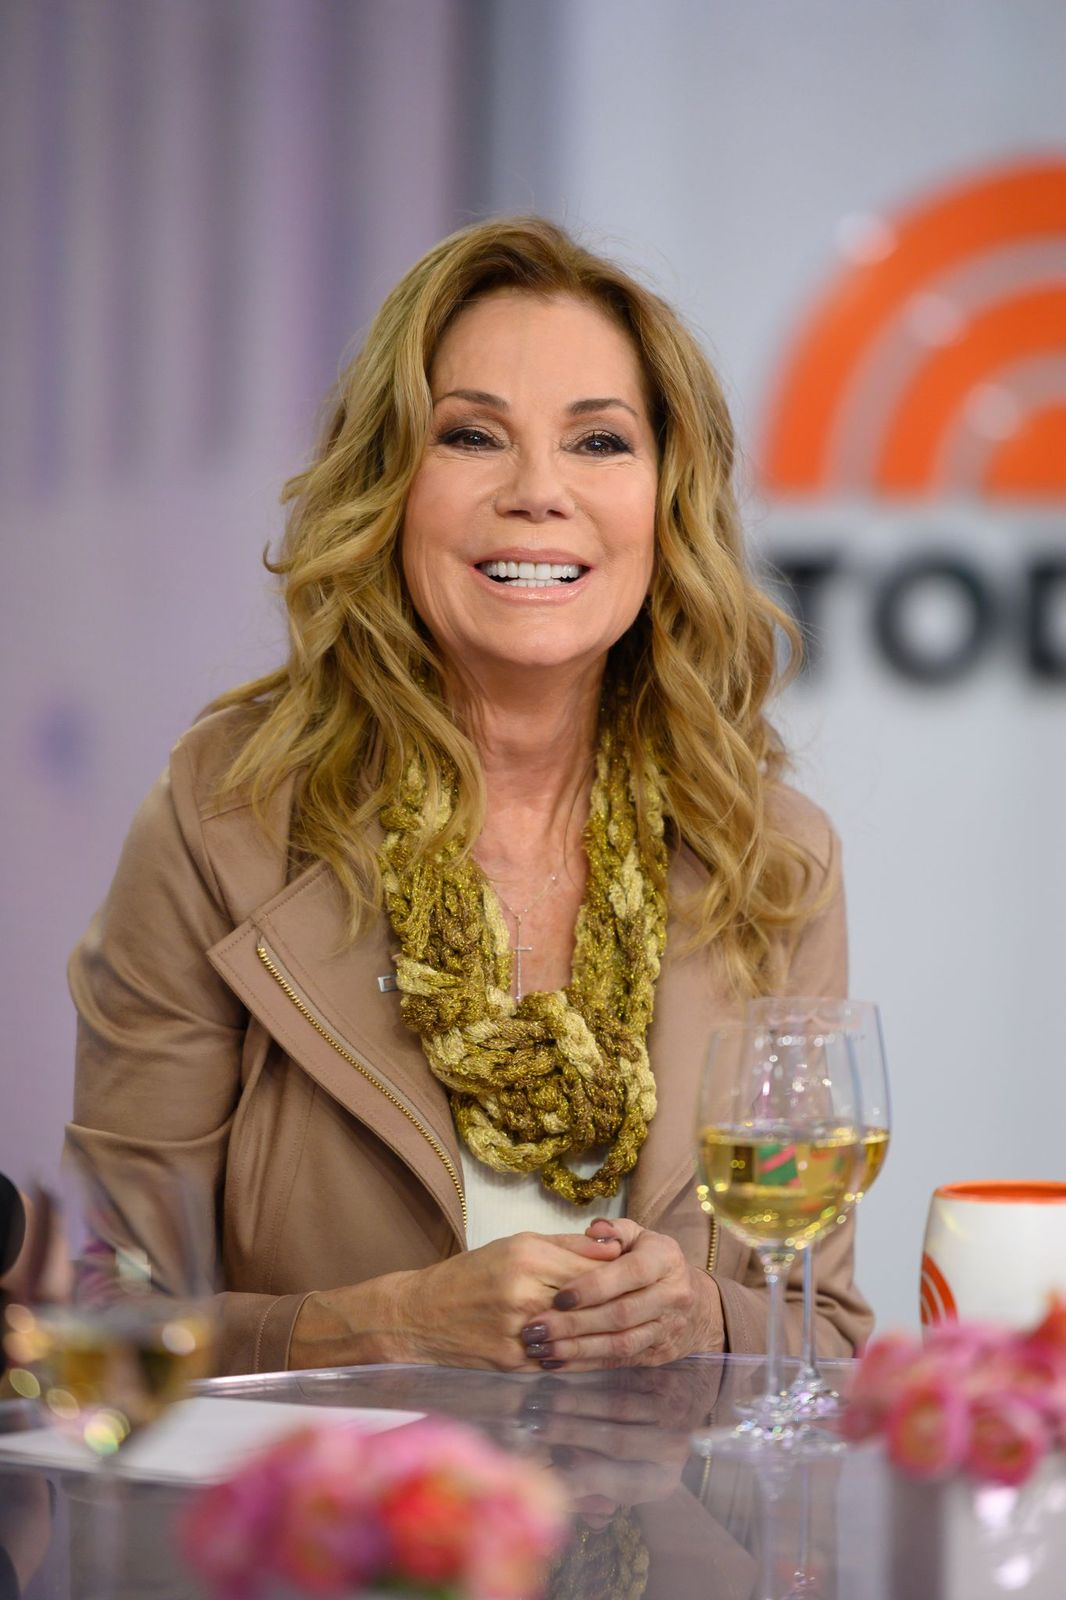 Kathie Lee Gifford on Thursday, January 23, 2020. | Getty Images